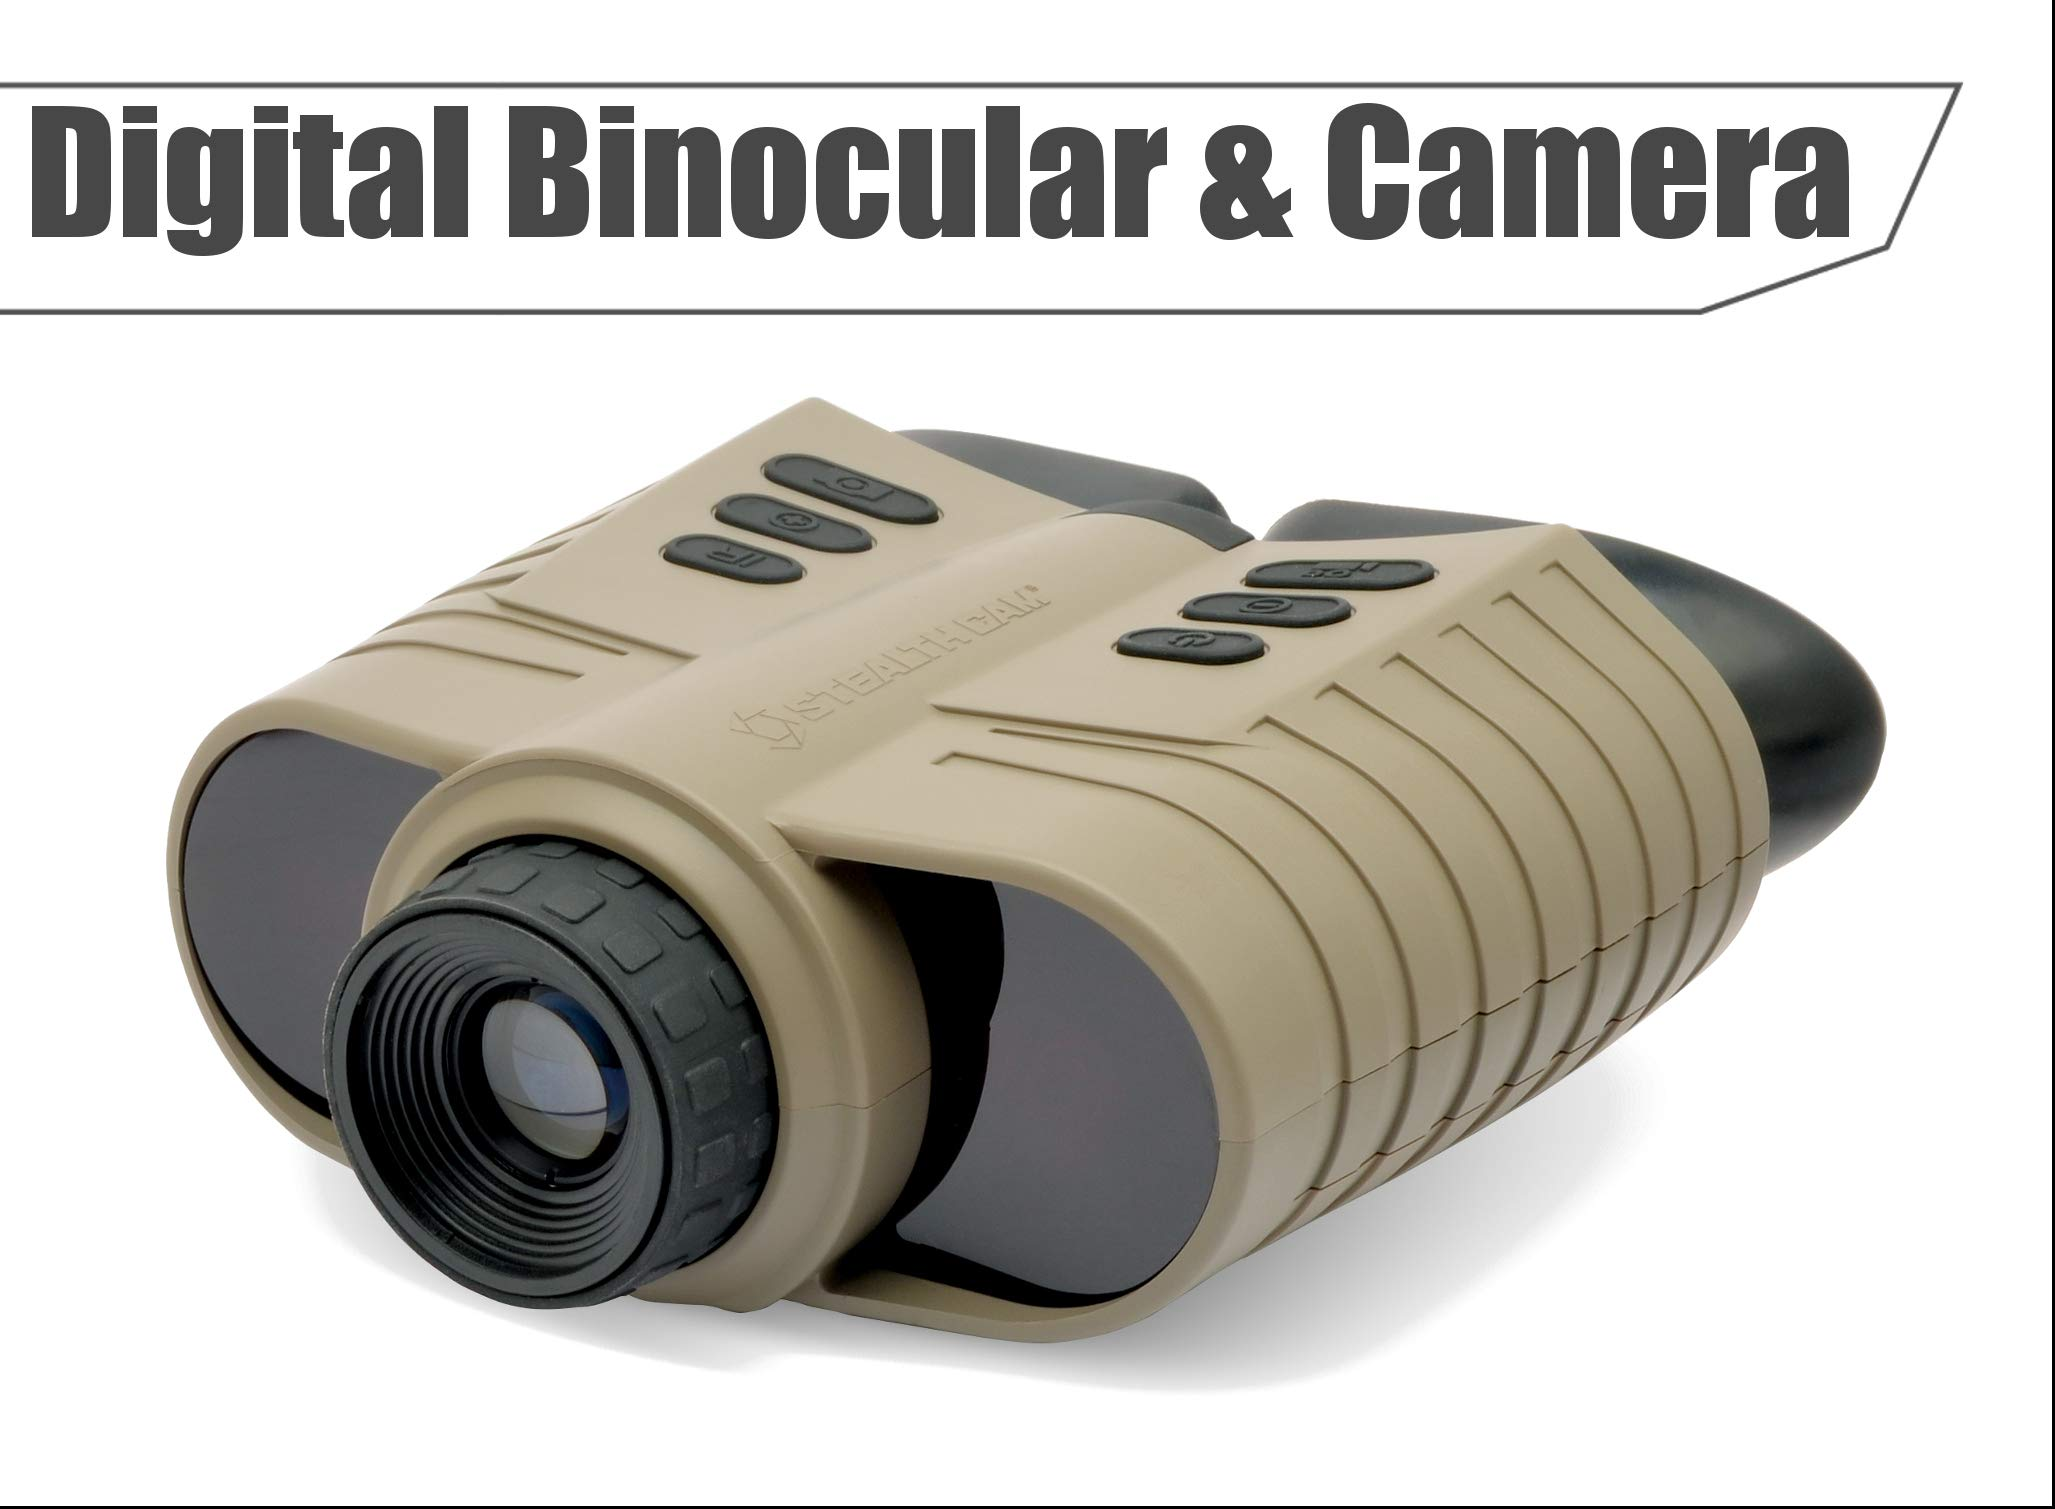 Stealth Cam Digital Night Vision Binoculars & Camera- Capture Images and Video by Stealth Cam